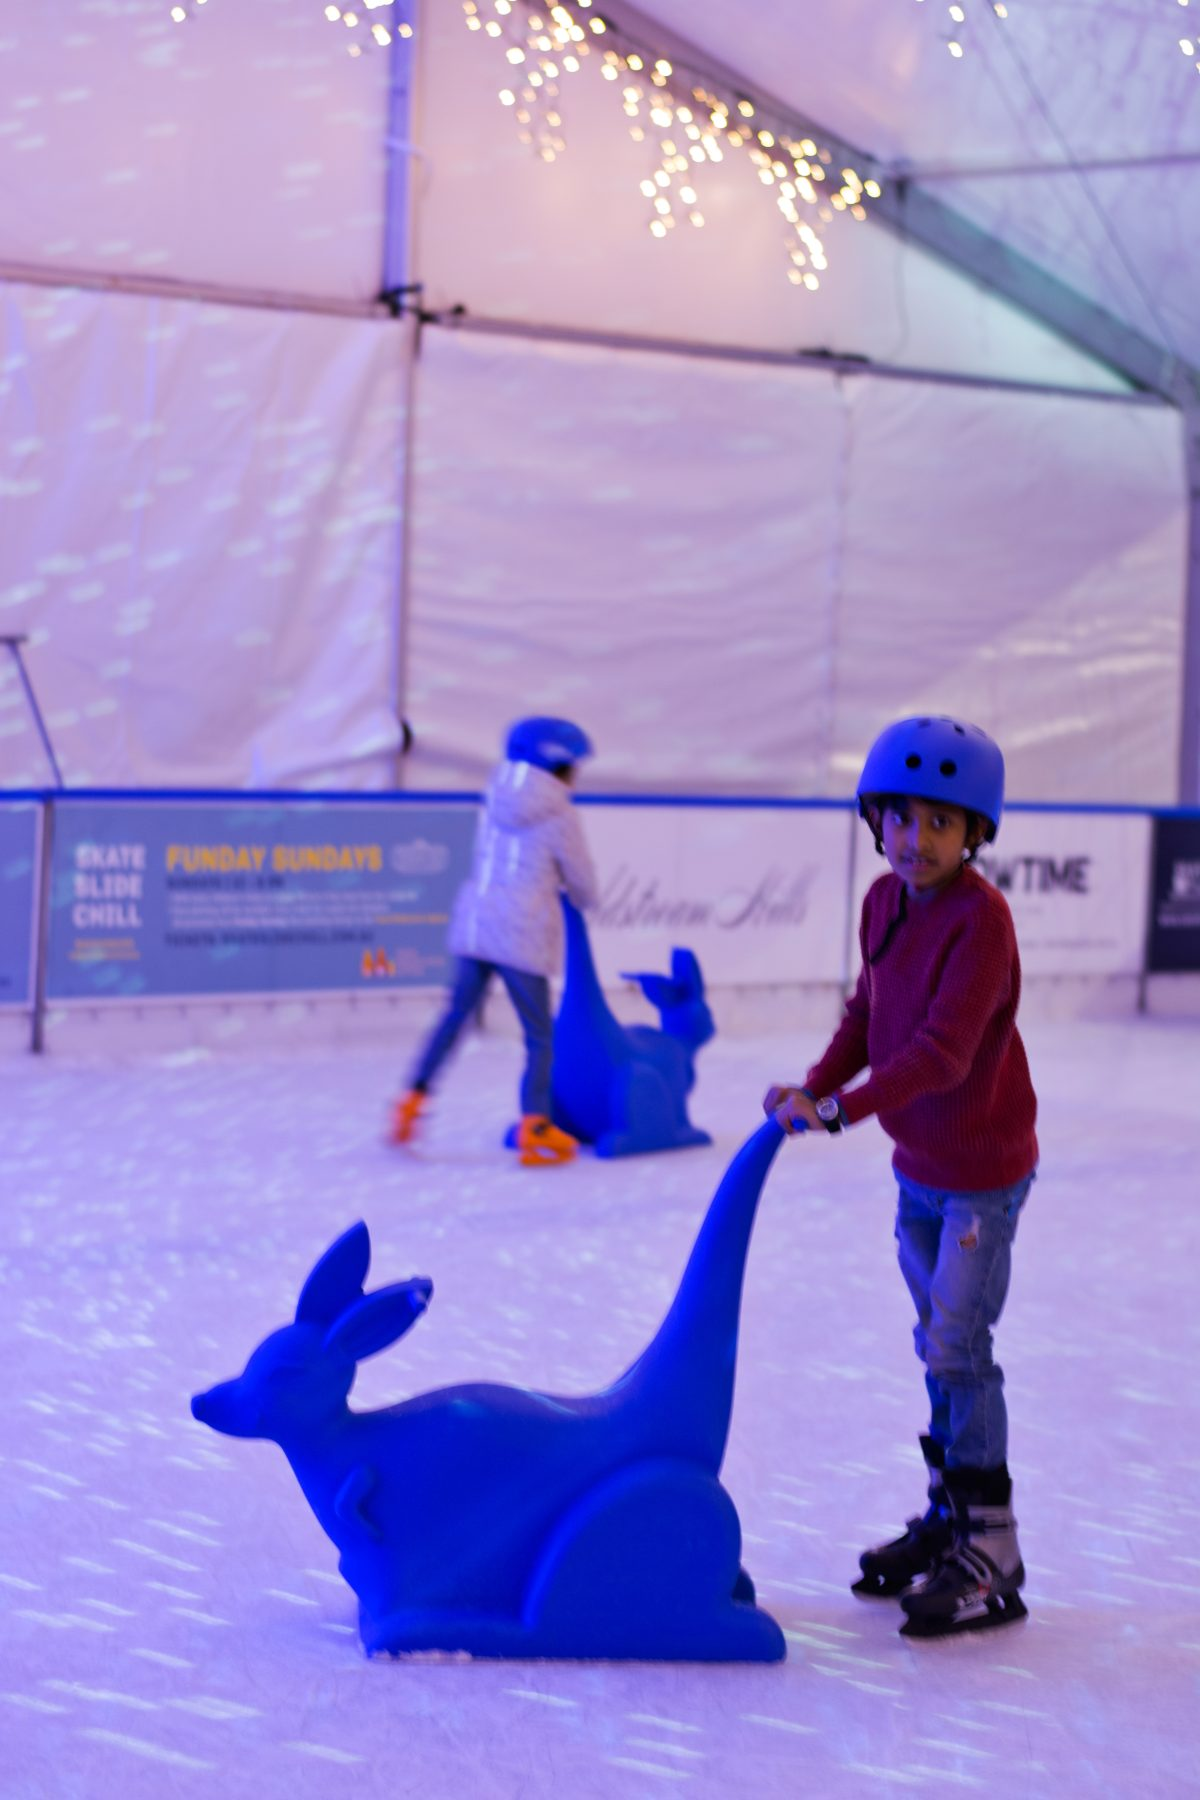 Skate, Slide and Chill at Common Man - thespiceadventuress.com